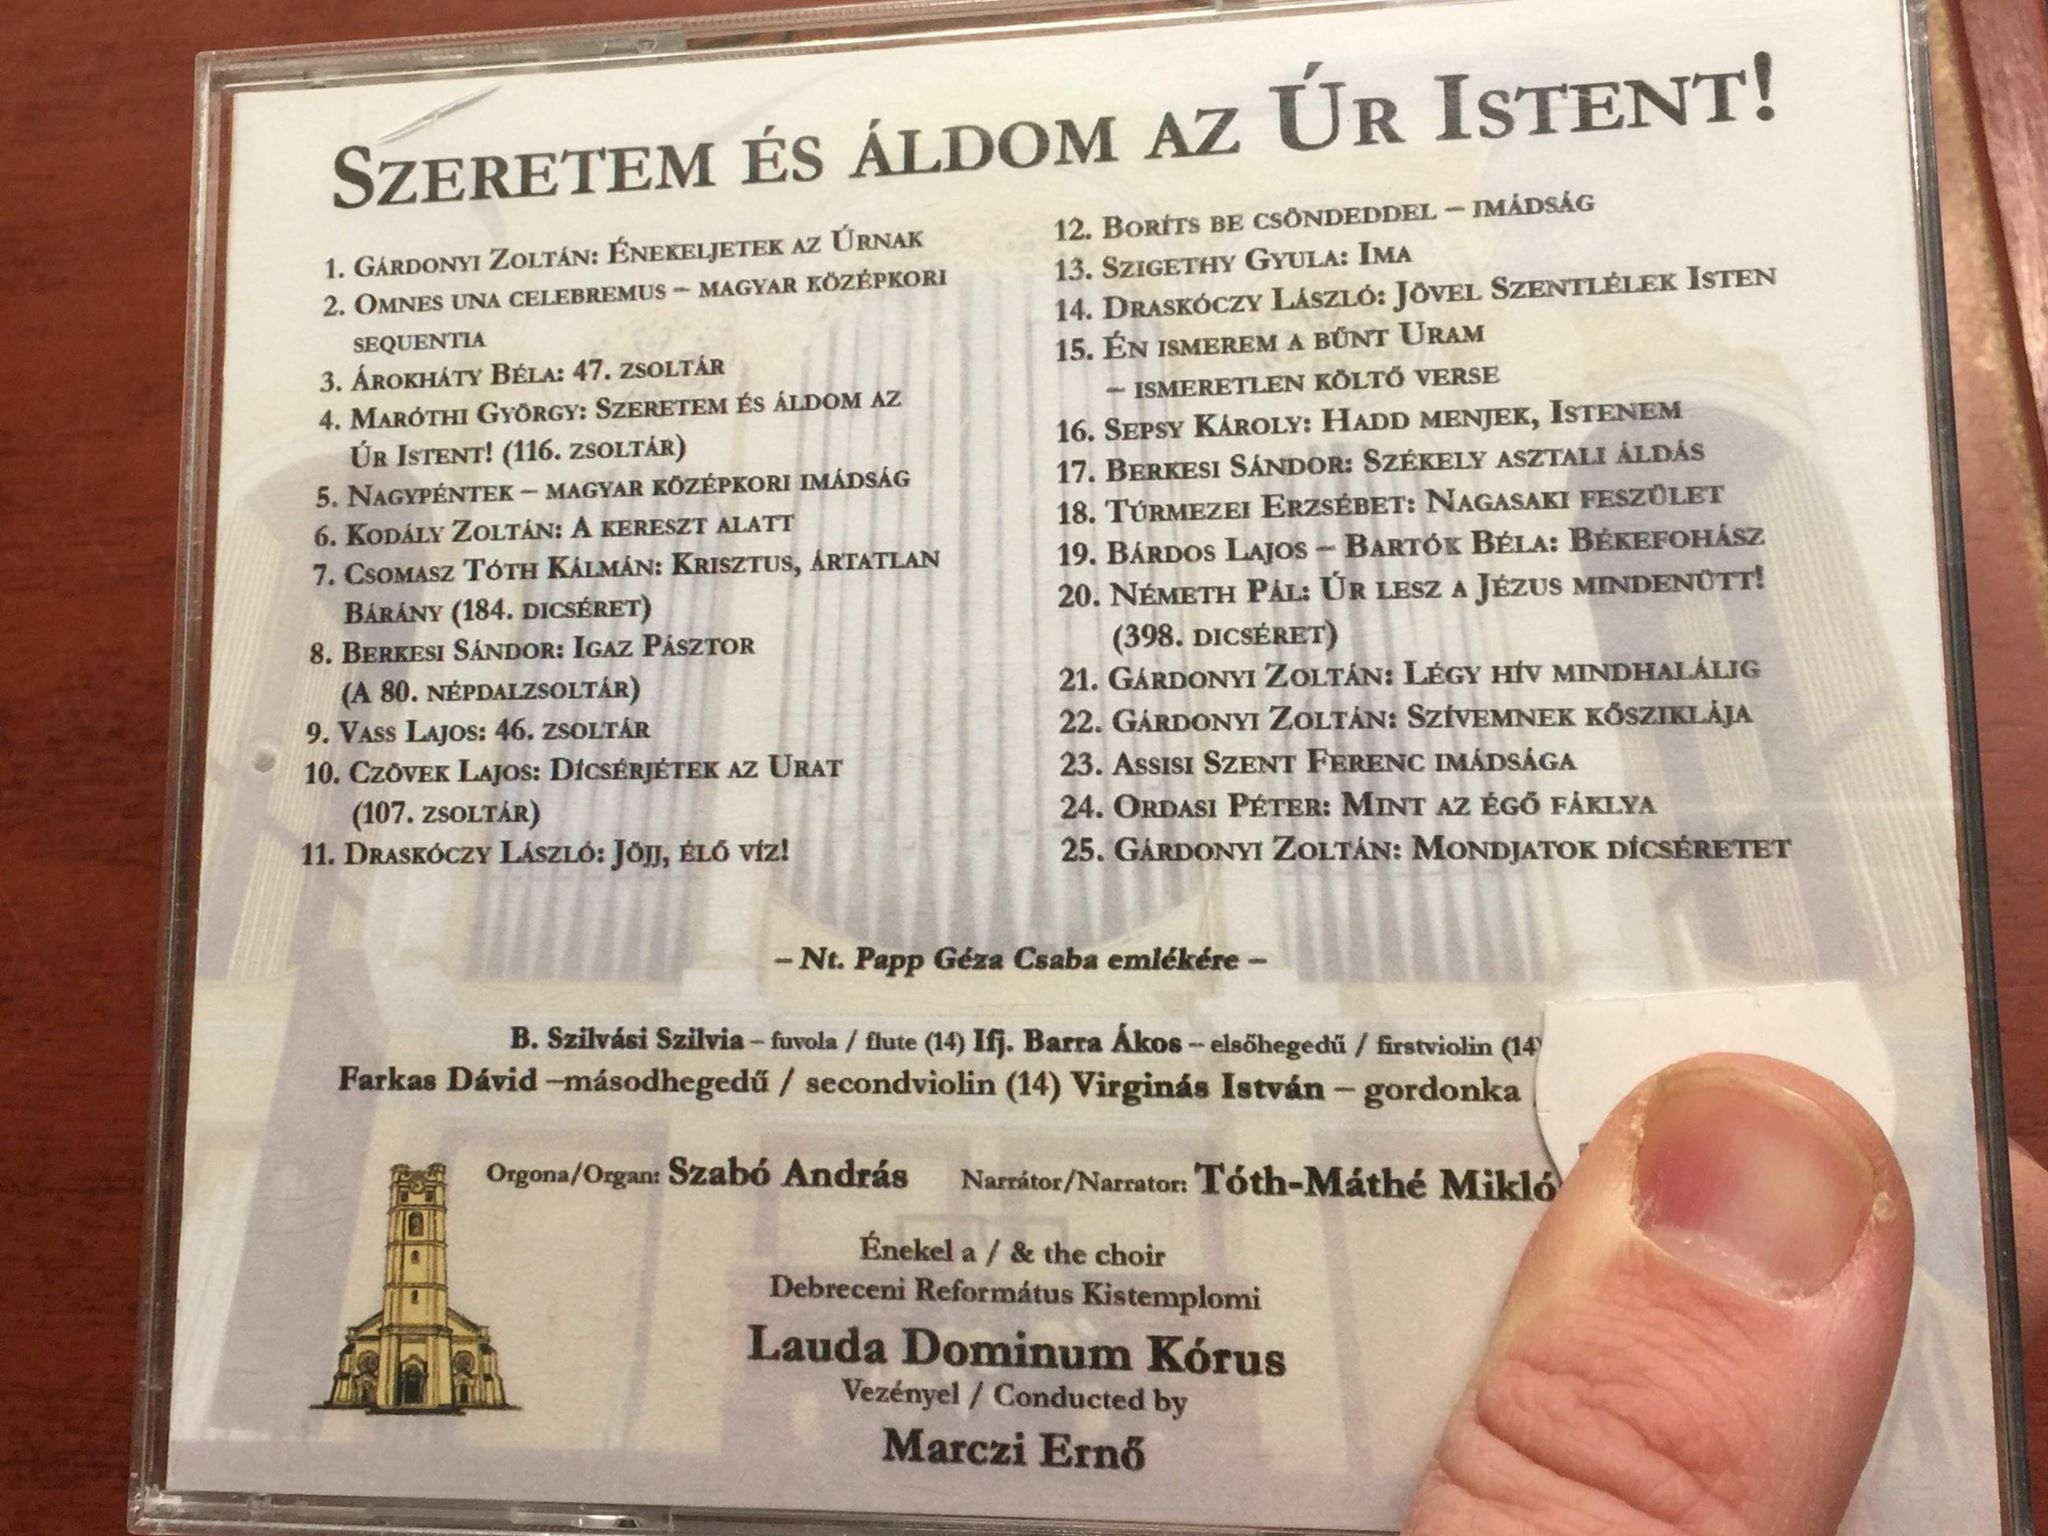 szeretem-s-ldom-az-r-istent-i-love-the-lord-because-he-has-heard-my-voice-and-my-supplications-psalm-1161-lauda-dominum-k-rus-choir-hungarian-cd-2008-2-.jpg